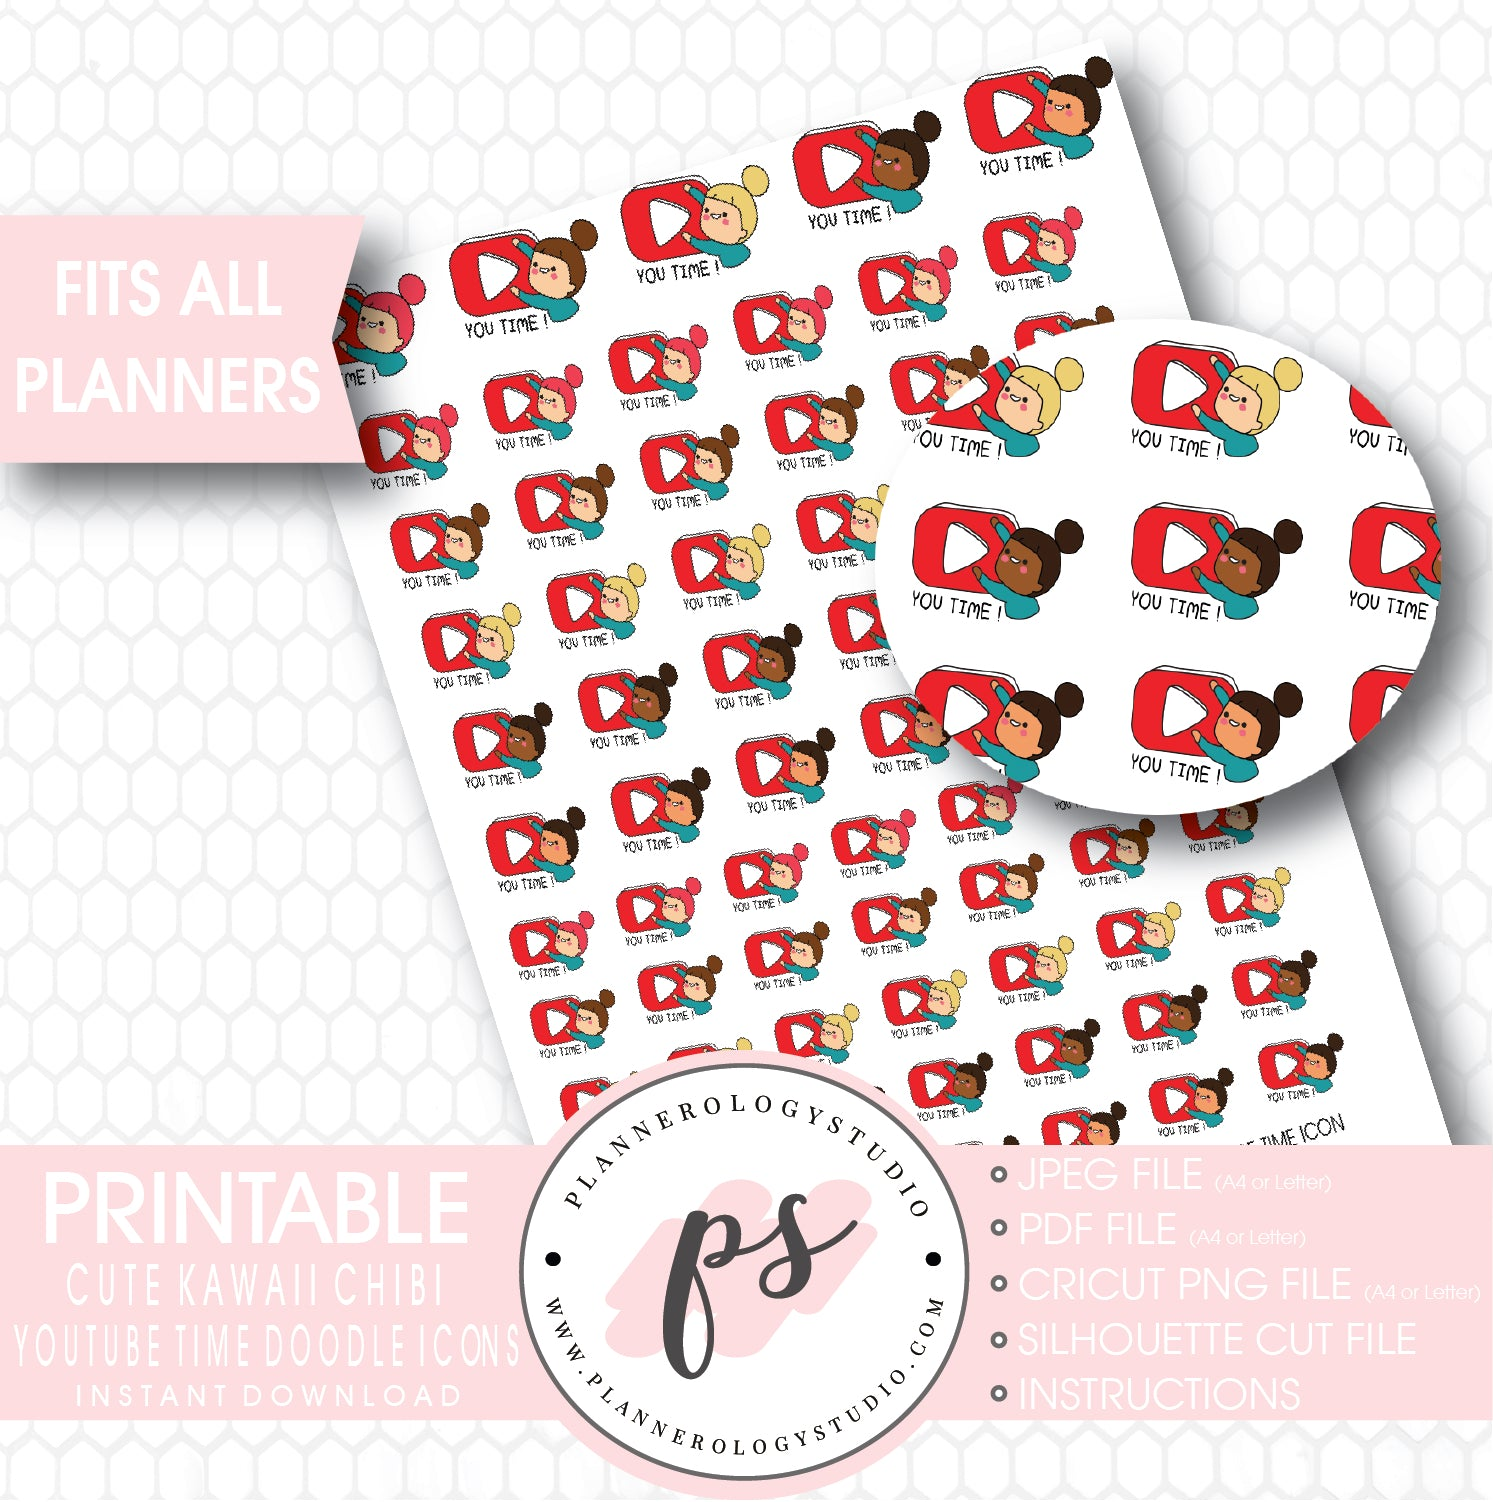 image relating to Cute Printable Stickers known as Kawaii Adorable Handrawn Doodle Chibi Woman Youtube Season Icon Printable Planner Stickers